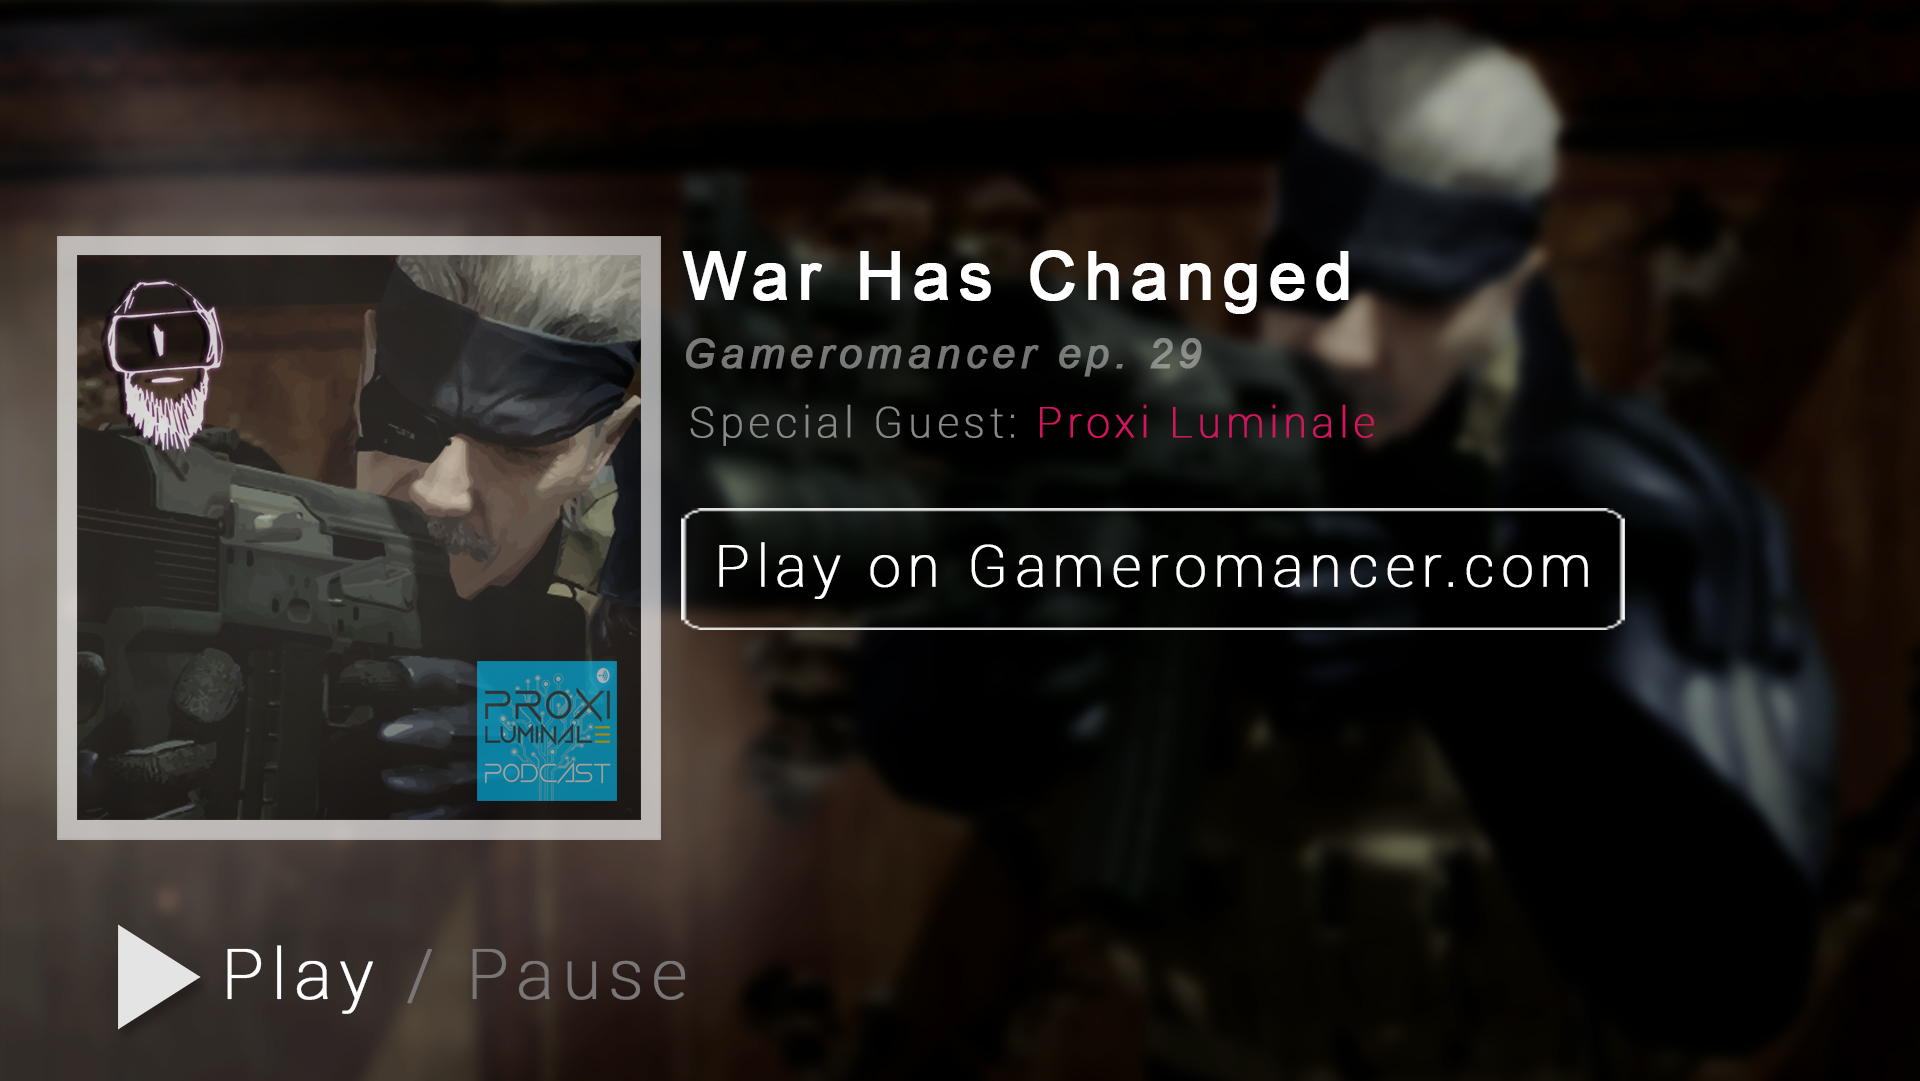 Gameromancer Ep. 29: War Has Changed